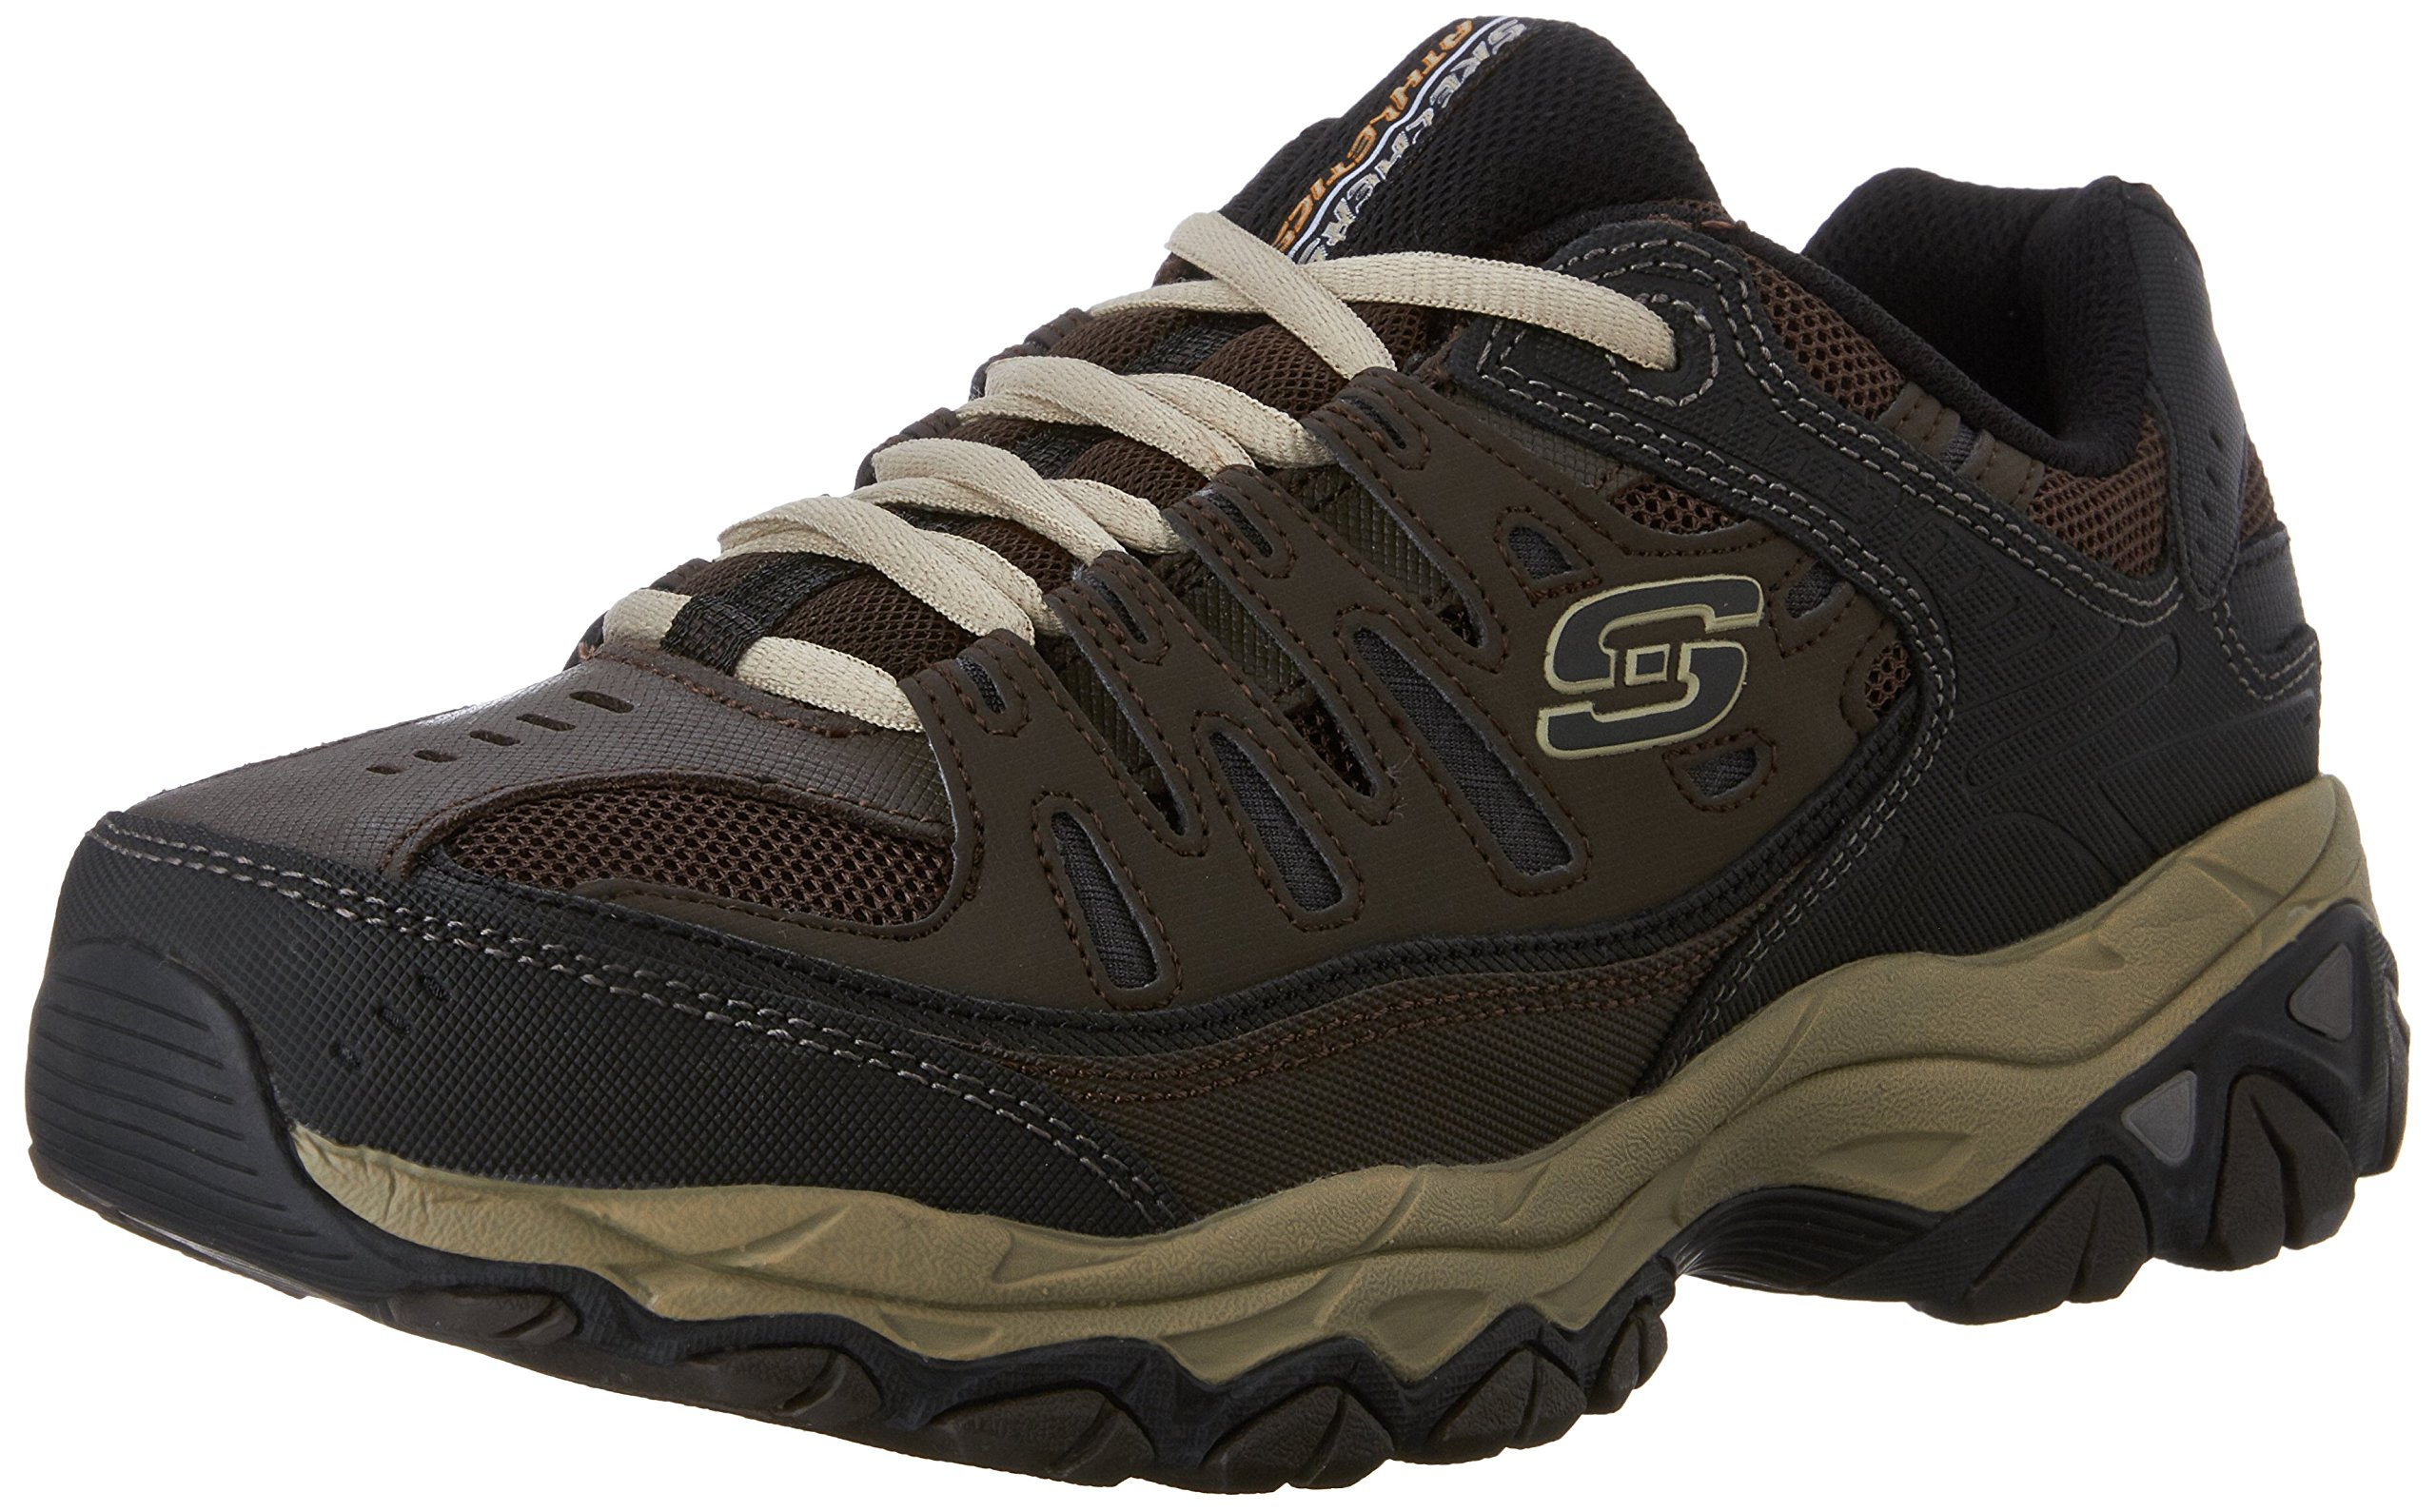 Skechers Men's AFTER BURN M.FIT Memory Foam Lace-Up Sneaker, Brown/Taupe, 7 M US